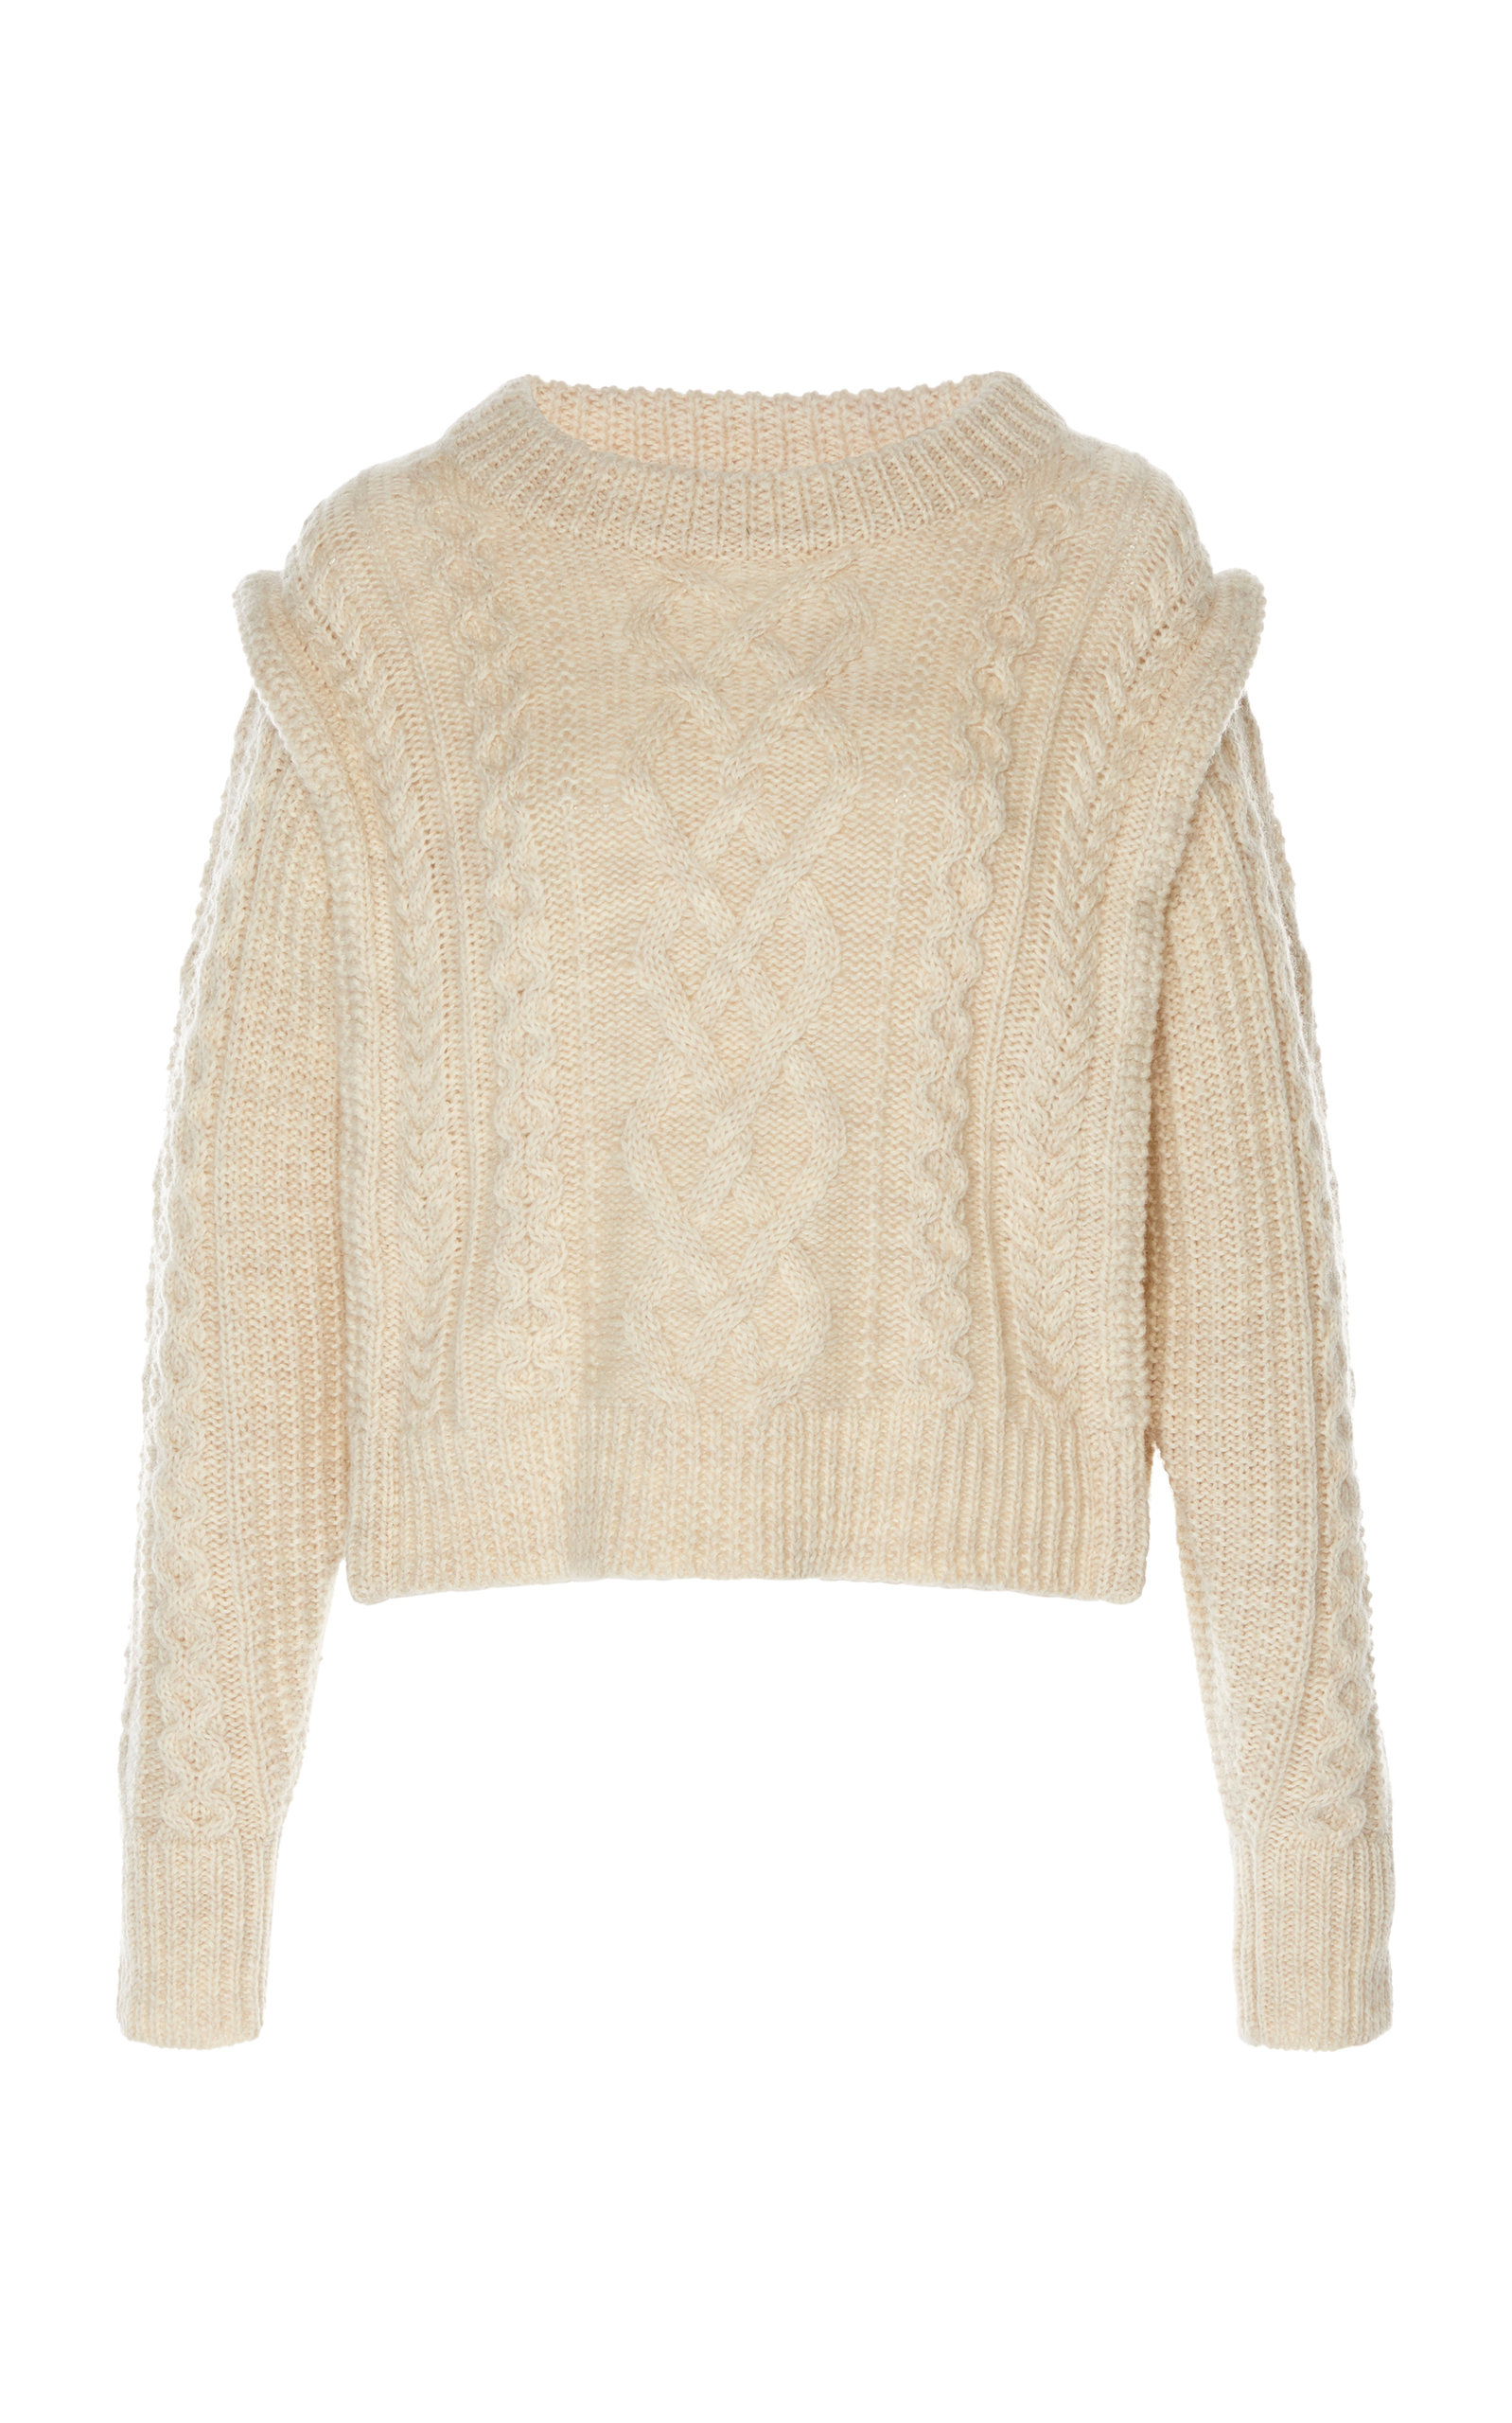 ISABEL MARANT ÉTOILE   Isabel Marant Étoile Tayle Cable-Knit Wool Sweater   Goxip